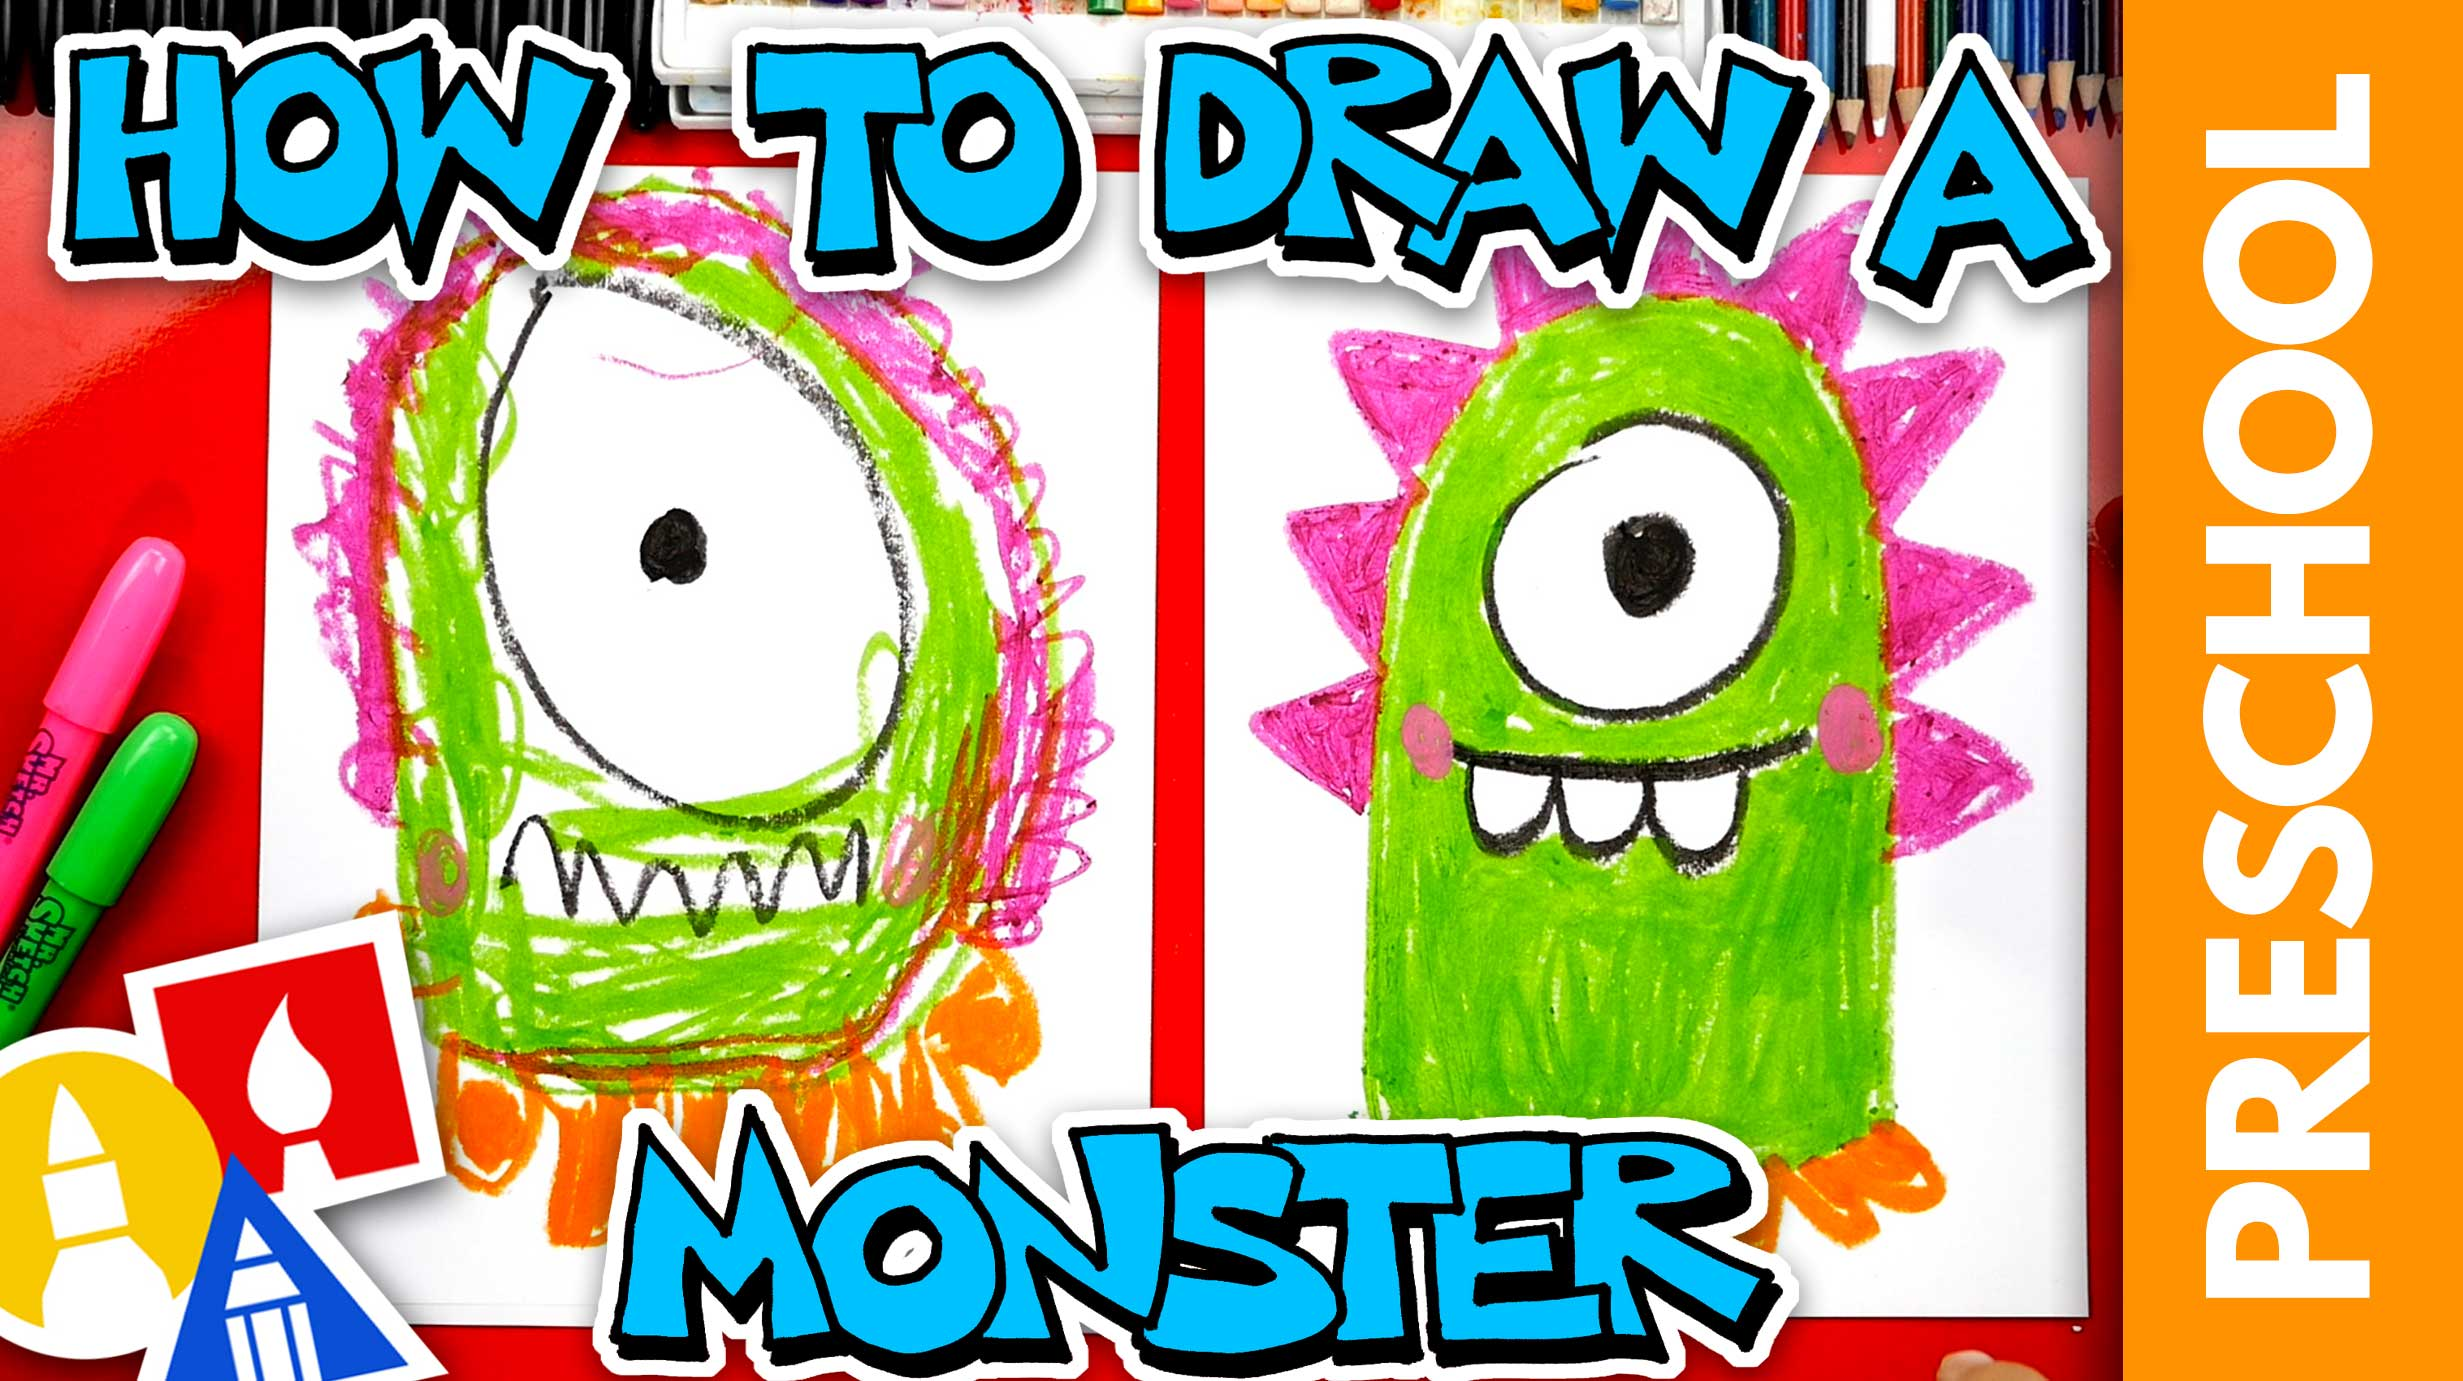 How To Draw A Funny Monster - Preschool - Art For Kids Hub